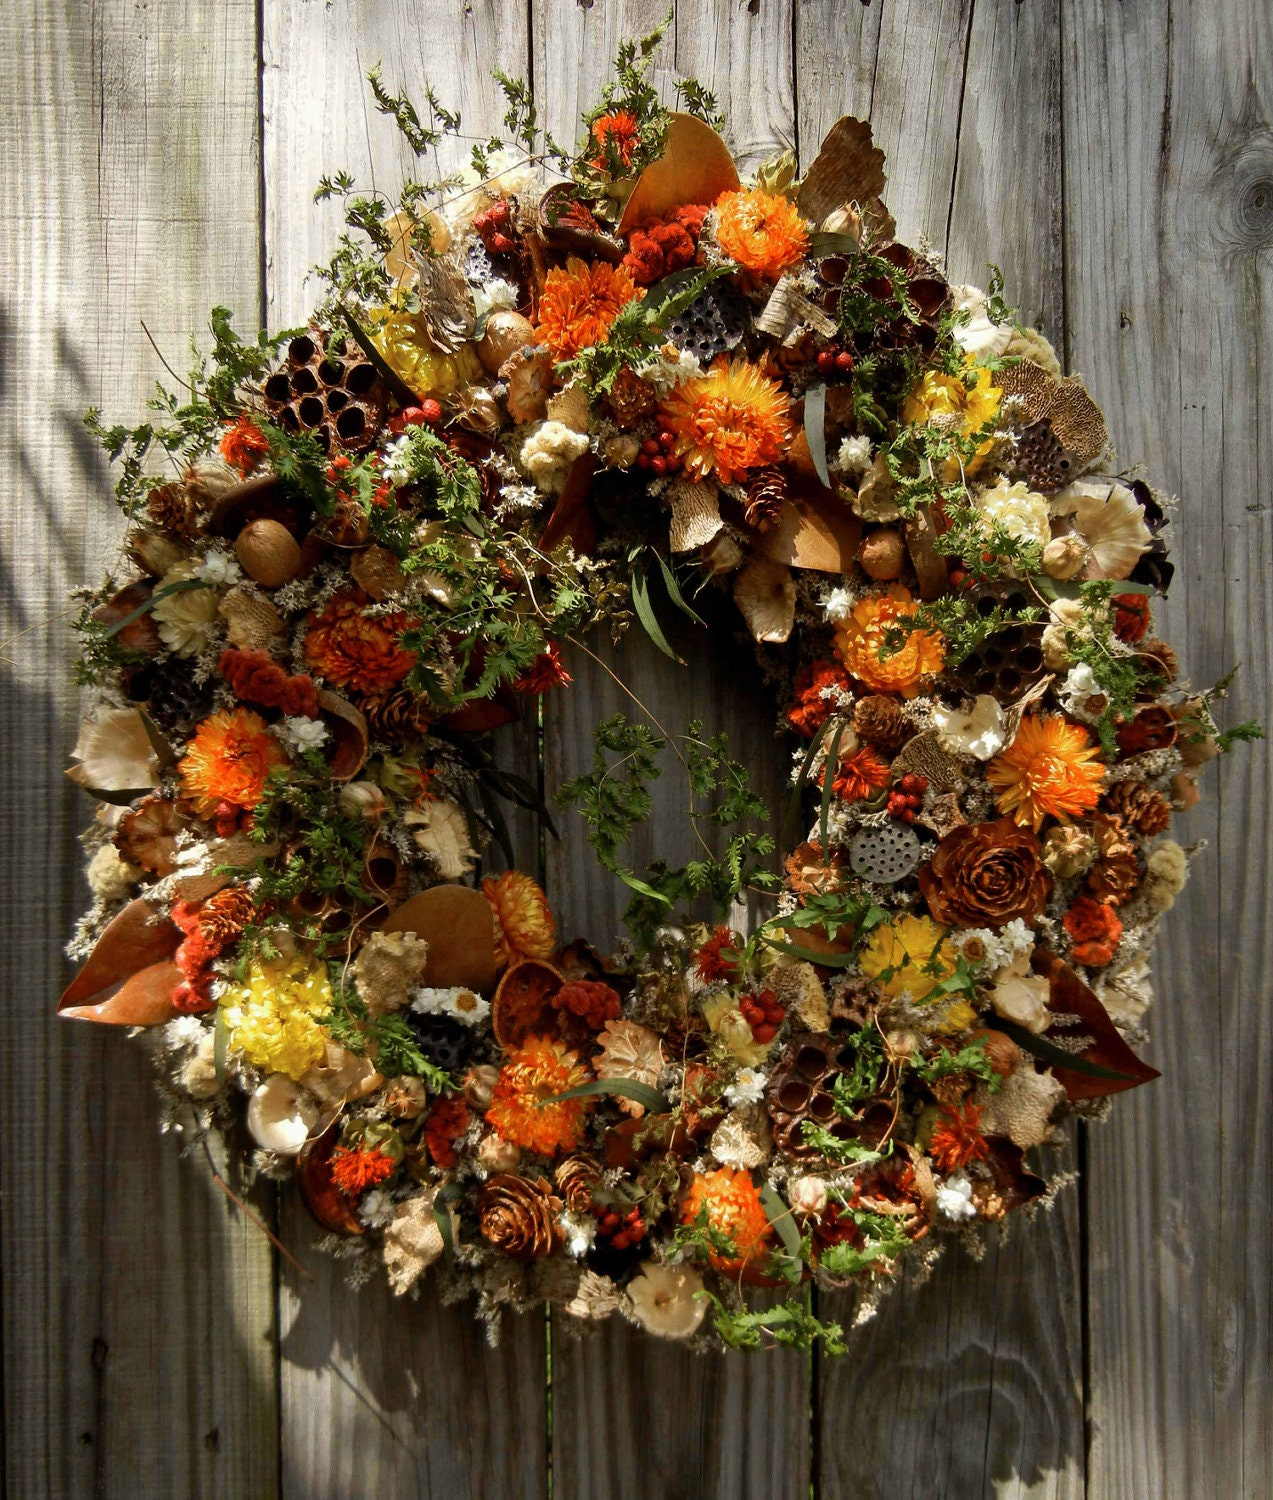 Natural Woodland Wreath | forevermore1 | Pinterest Picks - Fall Wreaths